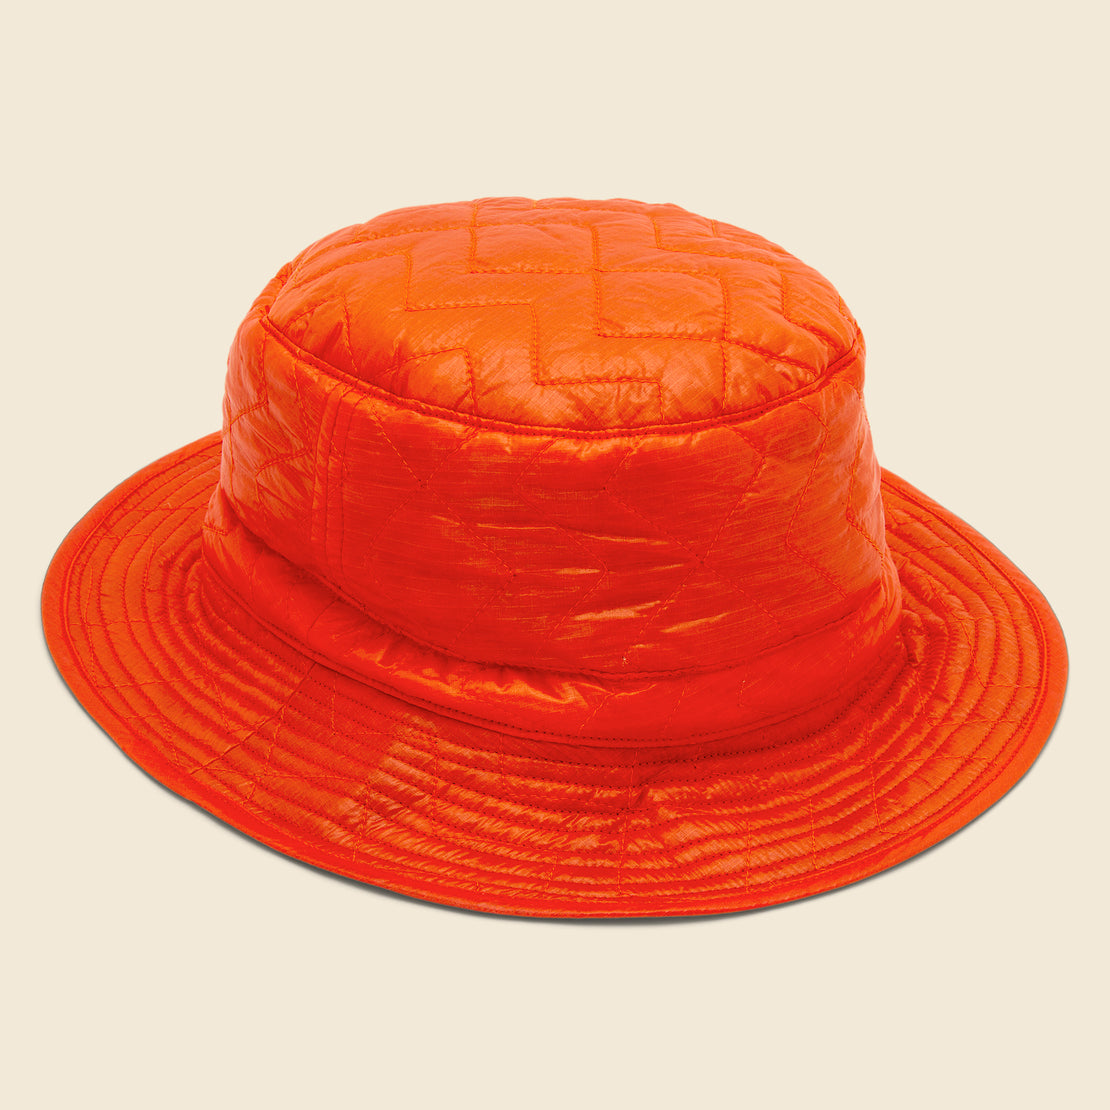 Monitaly Zigzag Quilted Bucket Hat - Orange